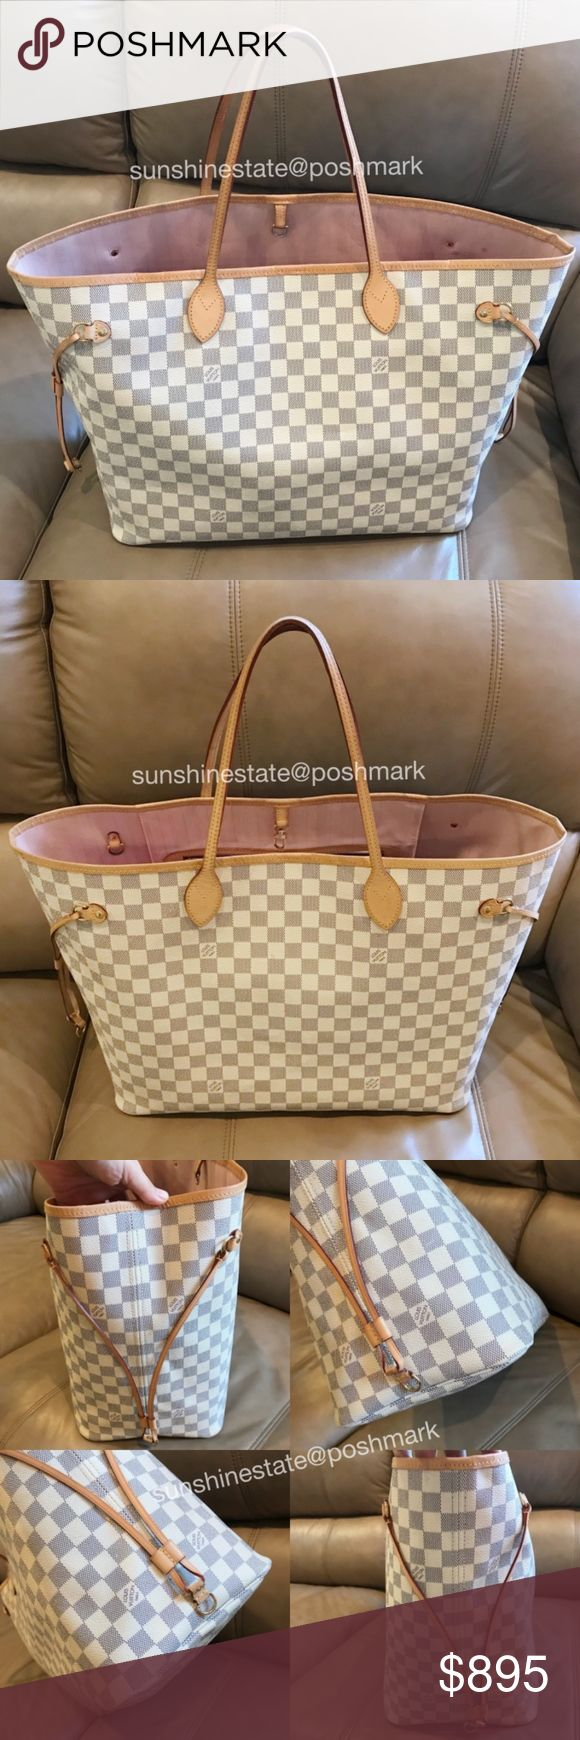 2017 Louis Vuitton Damier Azur Neverfull GM Rose B Authentic Damier Azur Neverfull GM Rose Ballerine Tote, made in 2017 (SD0177), has patina, scratches, water marks, creases, soiled inside from use, pouch is not included. Louis Vuitton Bags Totes